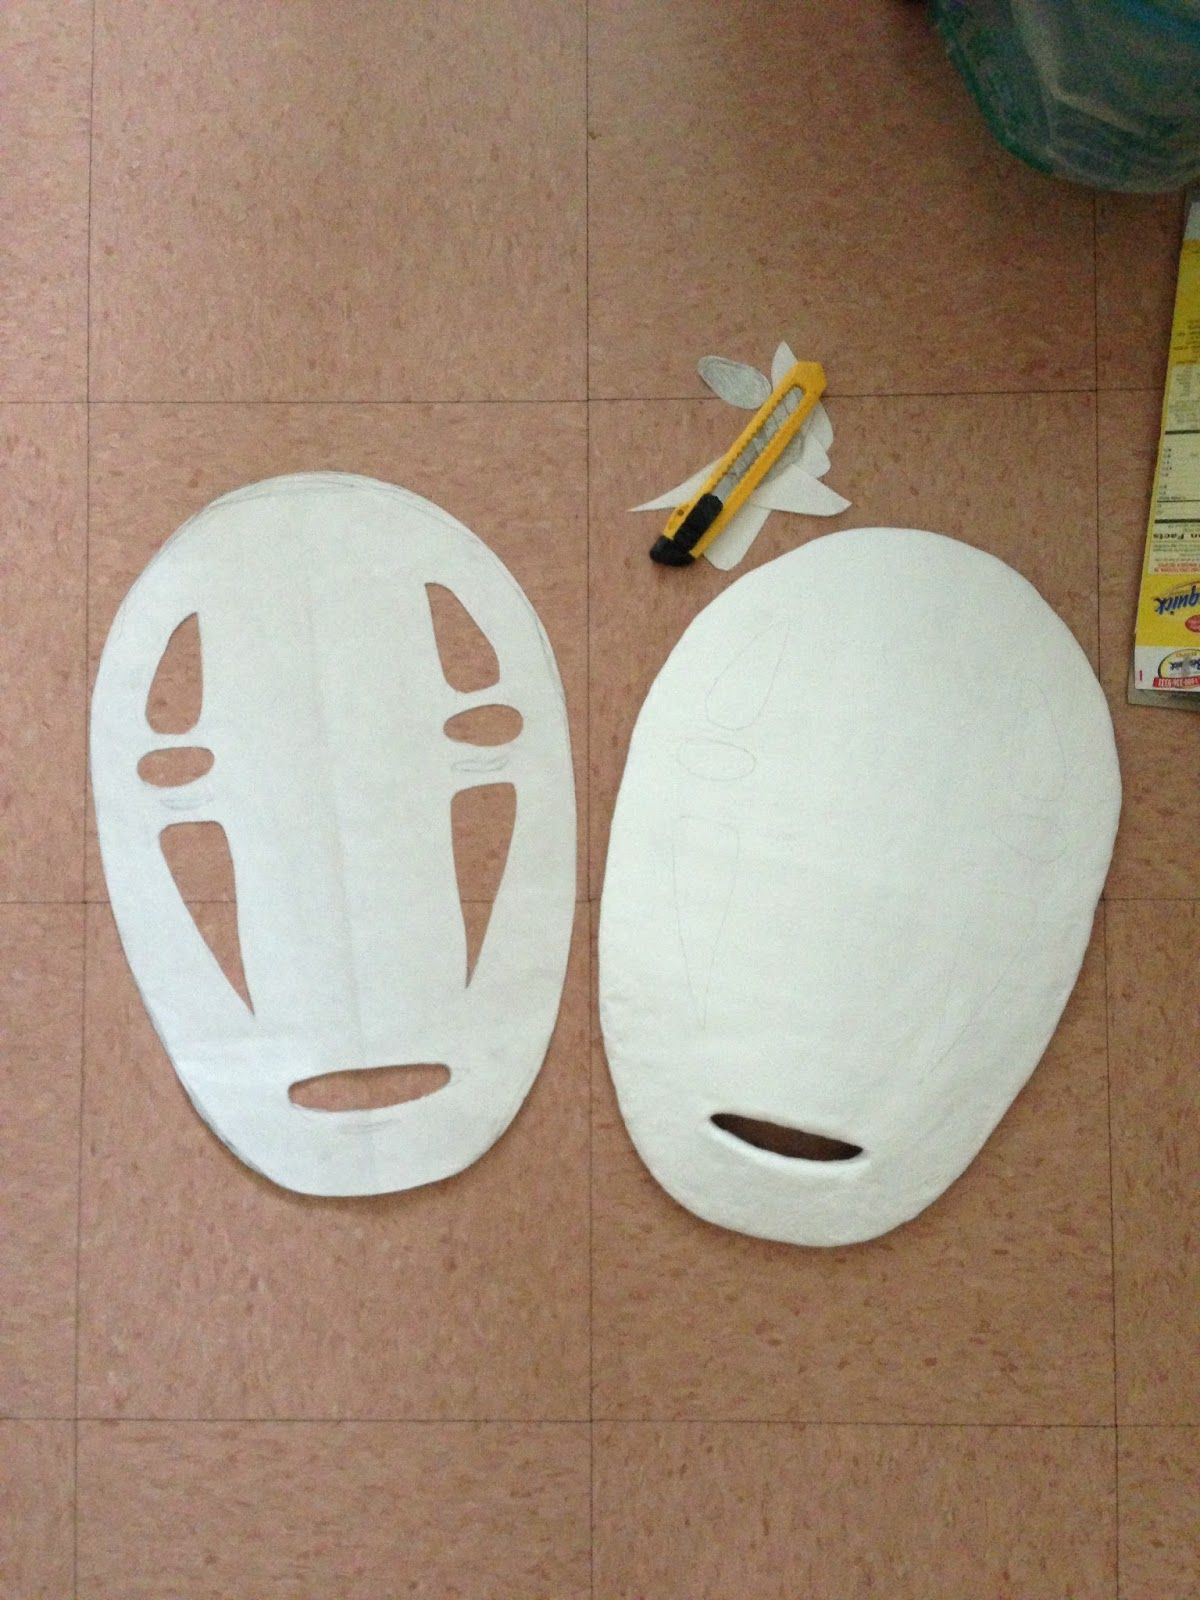 I Tried Searching For Ideas On How To Make A No Face Mask But Didn T Find Anything I Was Hoping For So I Made A T Mask Tutorial Anime Crafts No